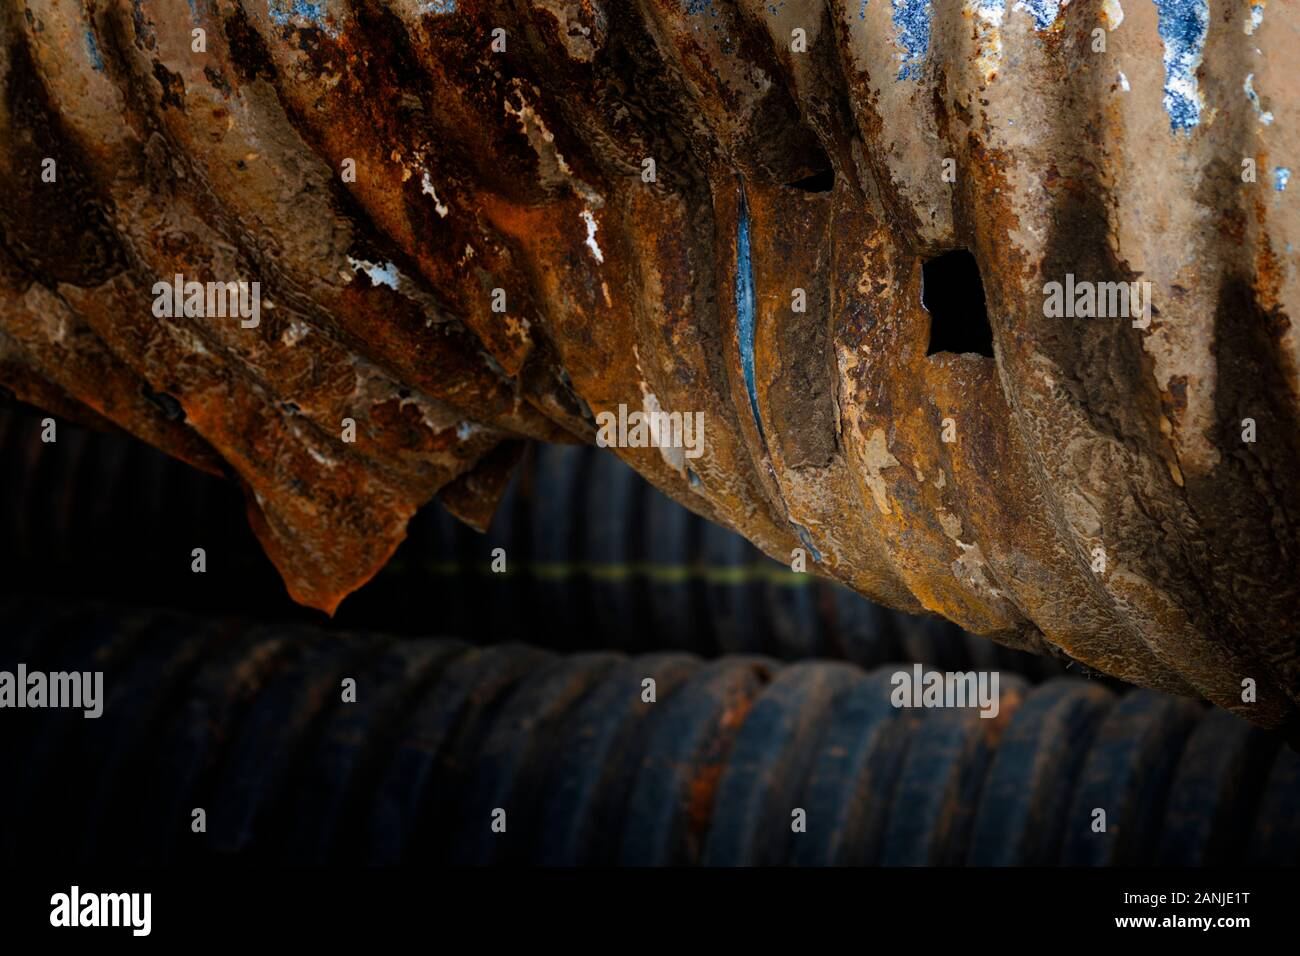 Drainage pipe extracted from a culvert draining an RV park in southern Alabama. Stock Photo